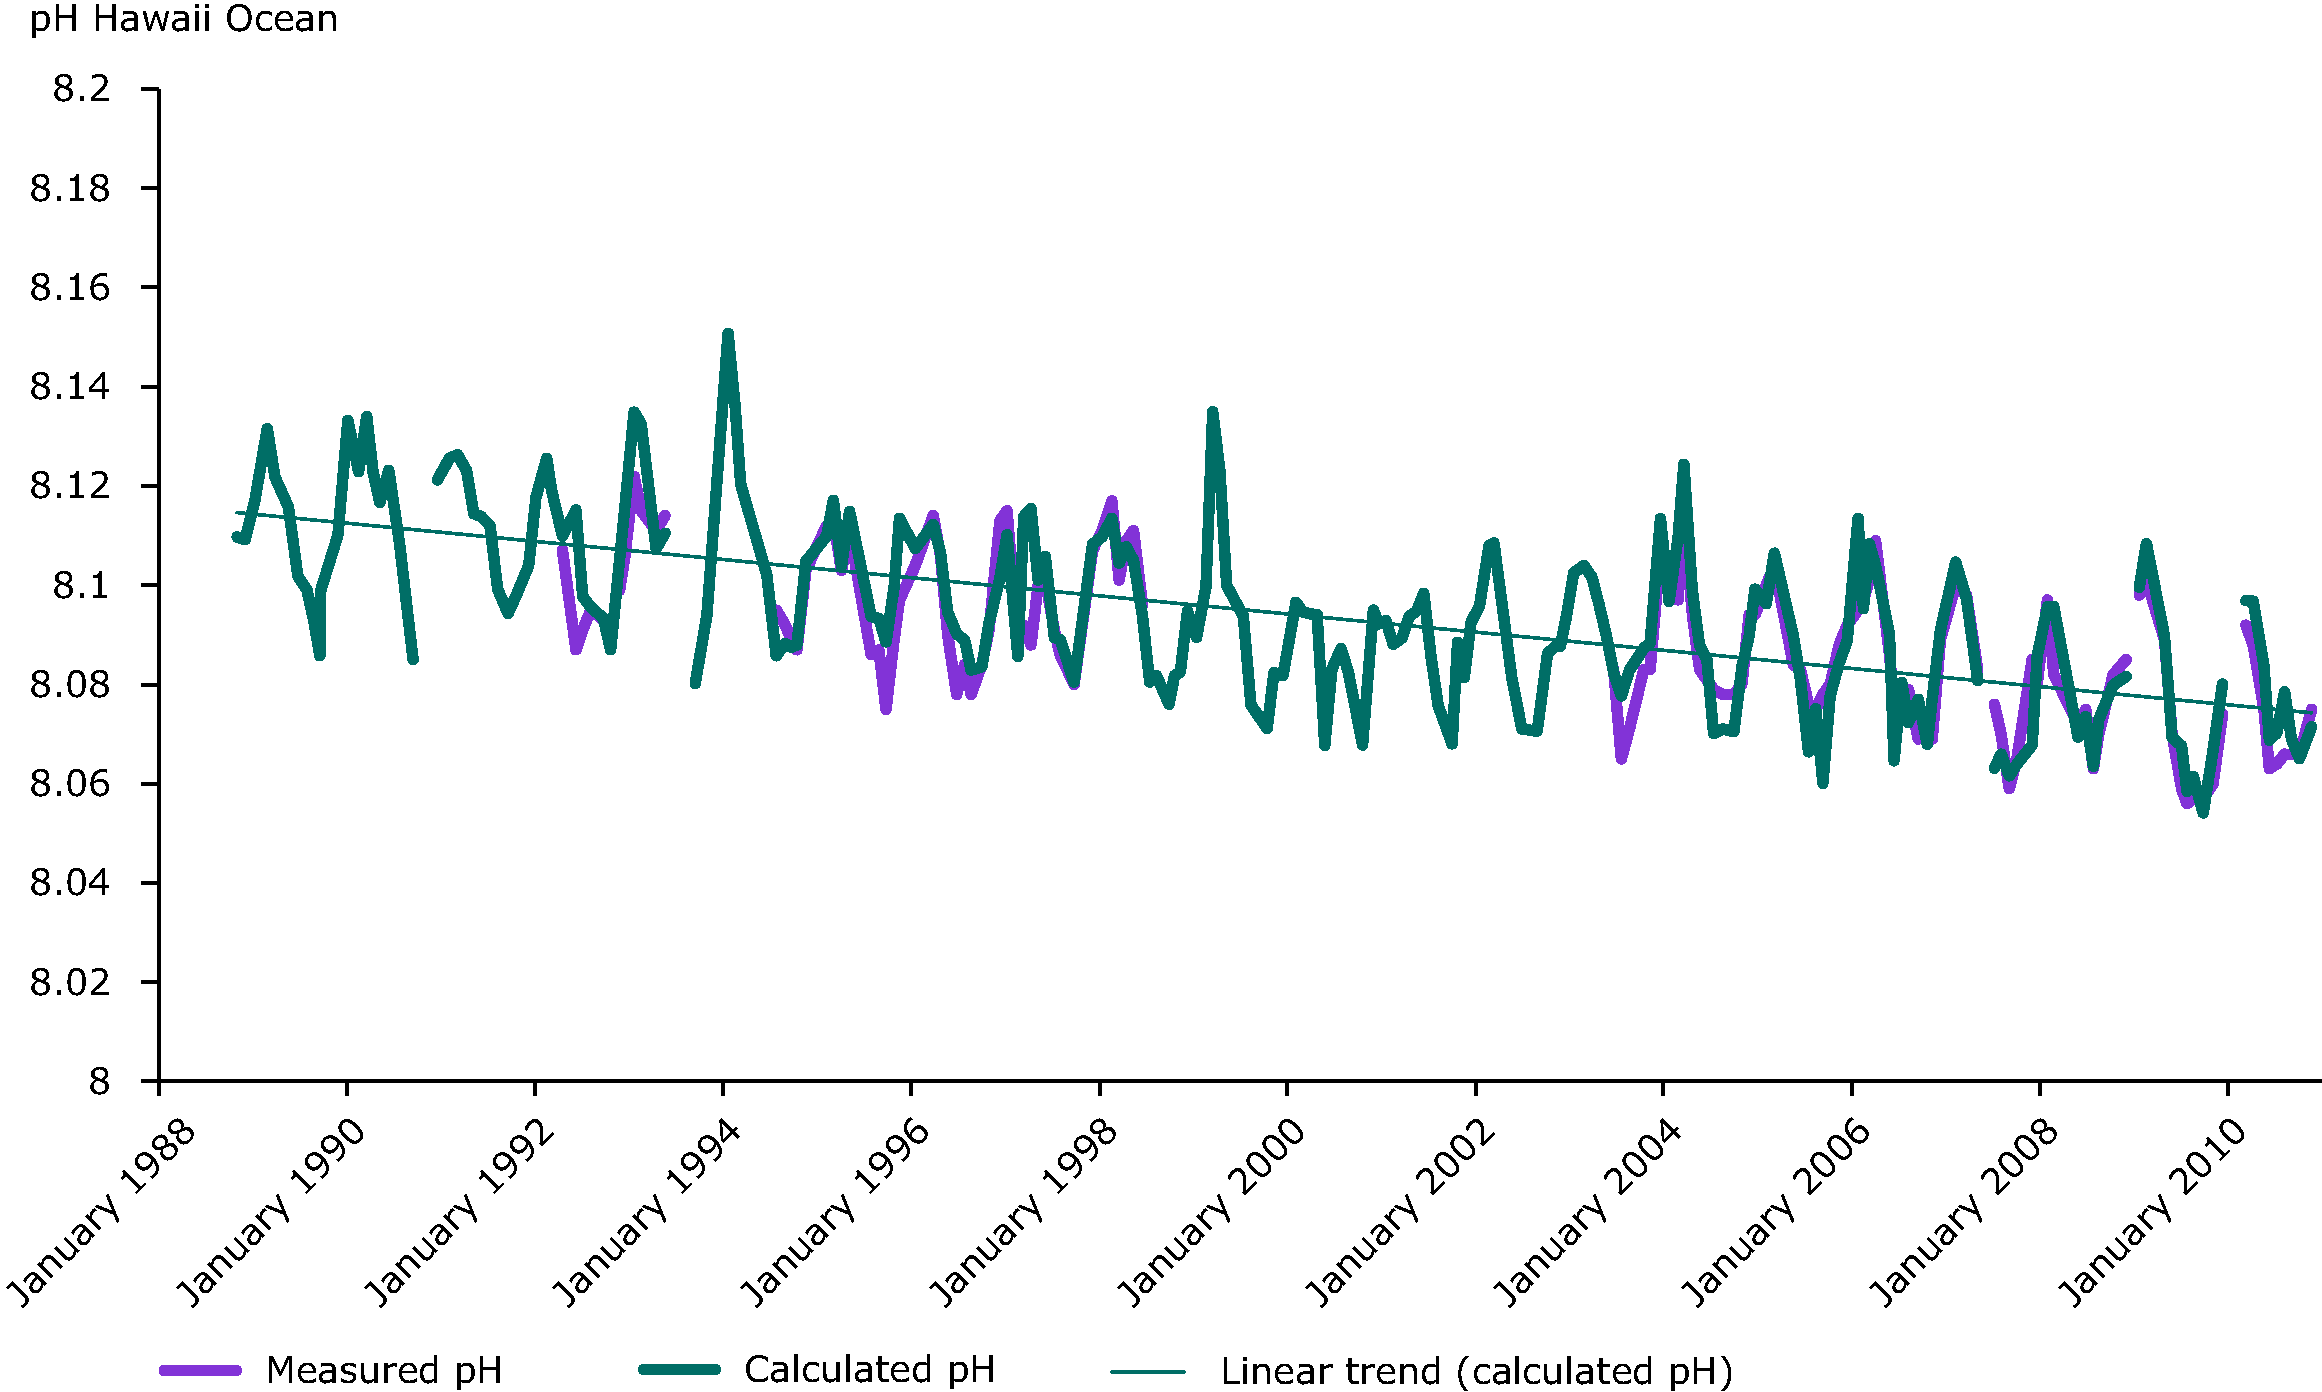 Decline in pH measured at the Aloha station as part of the Hawaii Ocean time-series